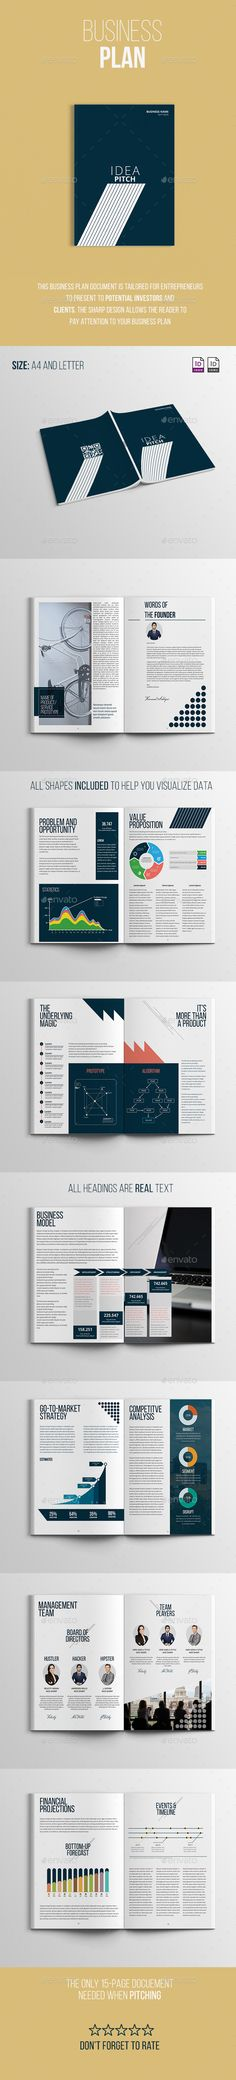 Business Plan Document Template InDesign INDD #design Download: http://graphicriver.net/item/business-plan/14446762?ref=ksioks